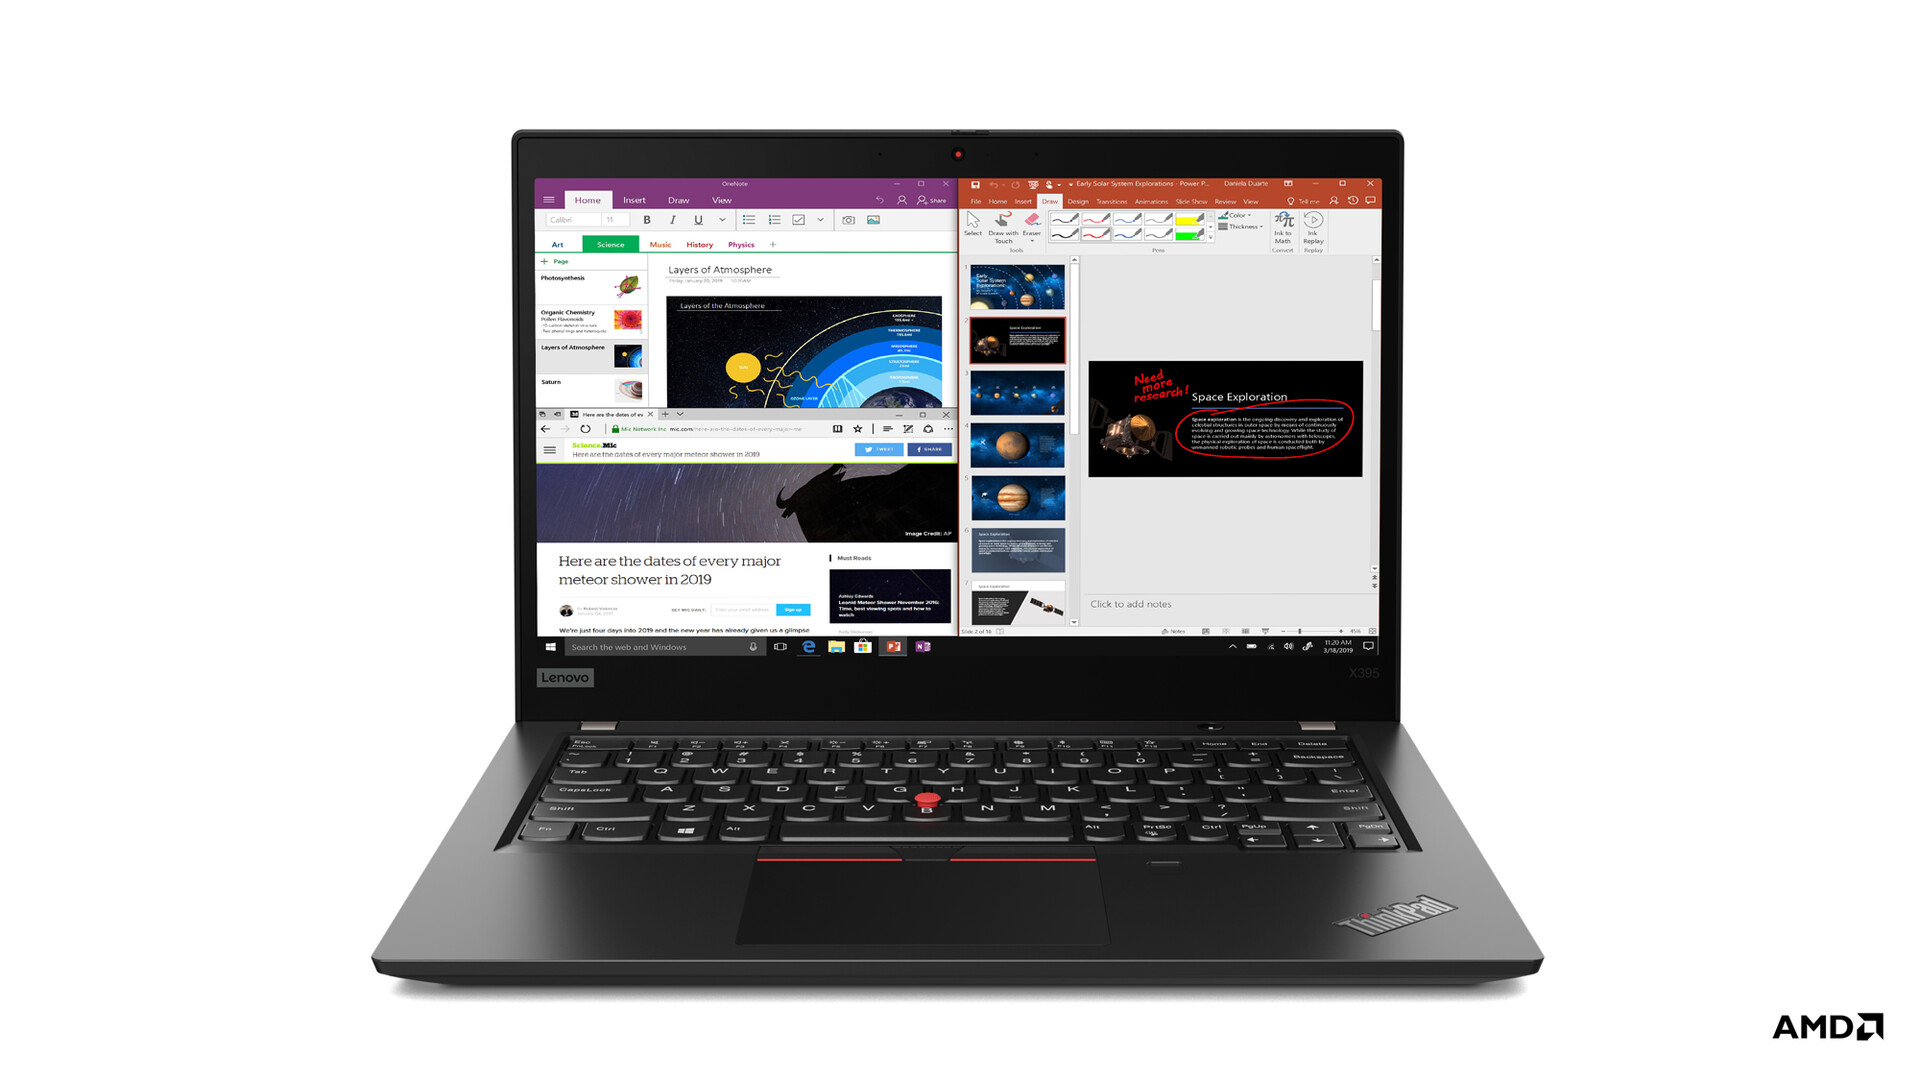 Lenovo bringing AMD CPUs to its ThinkPad T495, T495s and